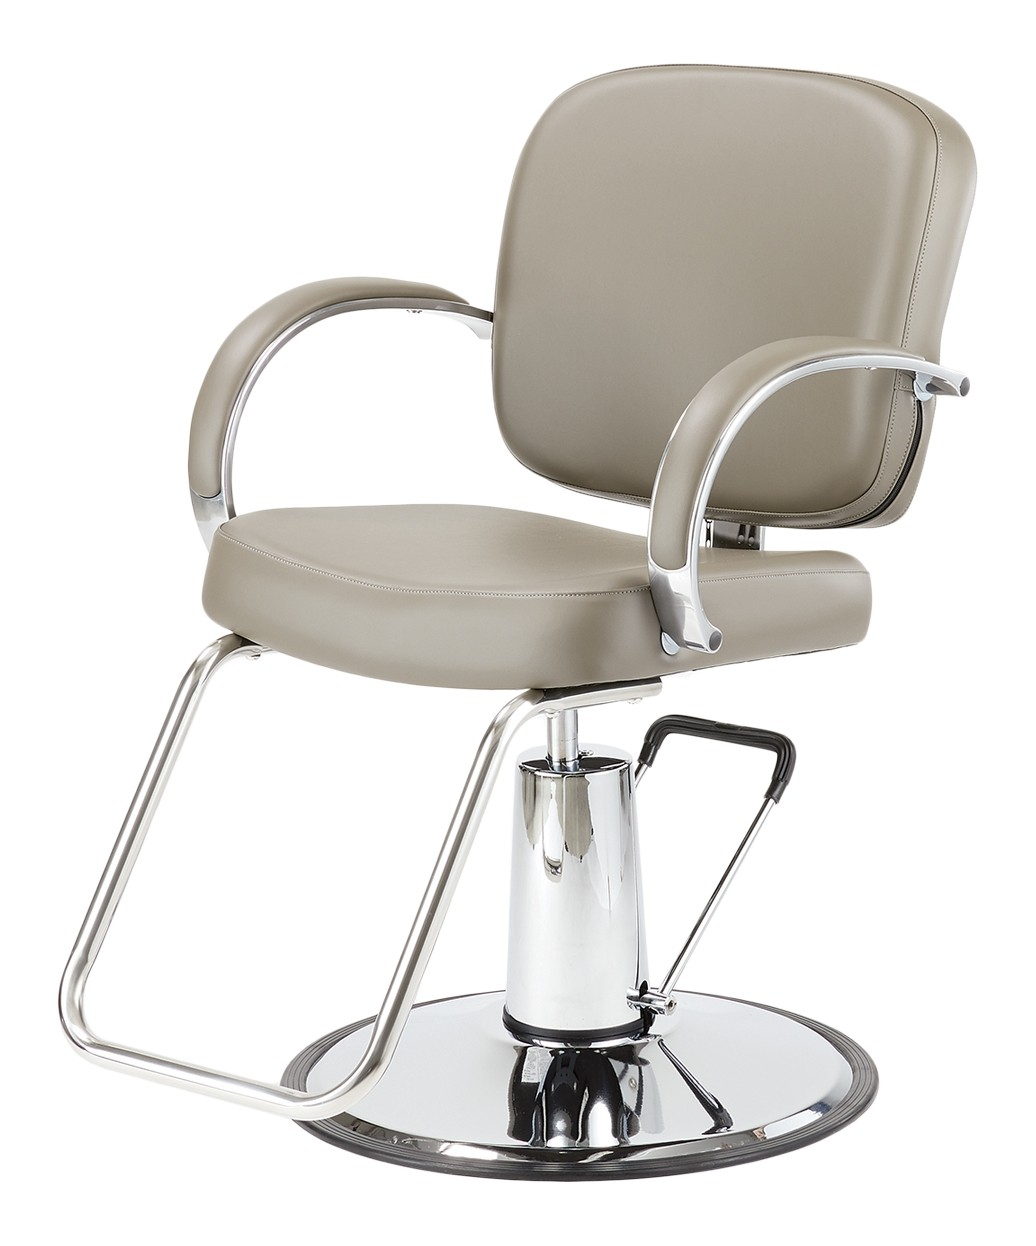 Pibbs 3106 Luca Styling Chair